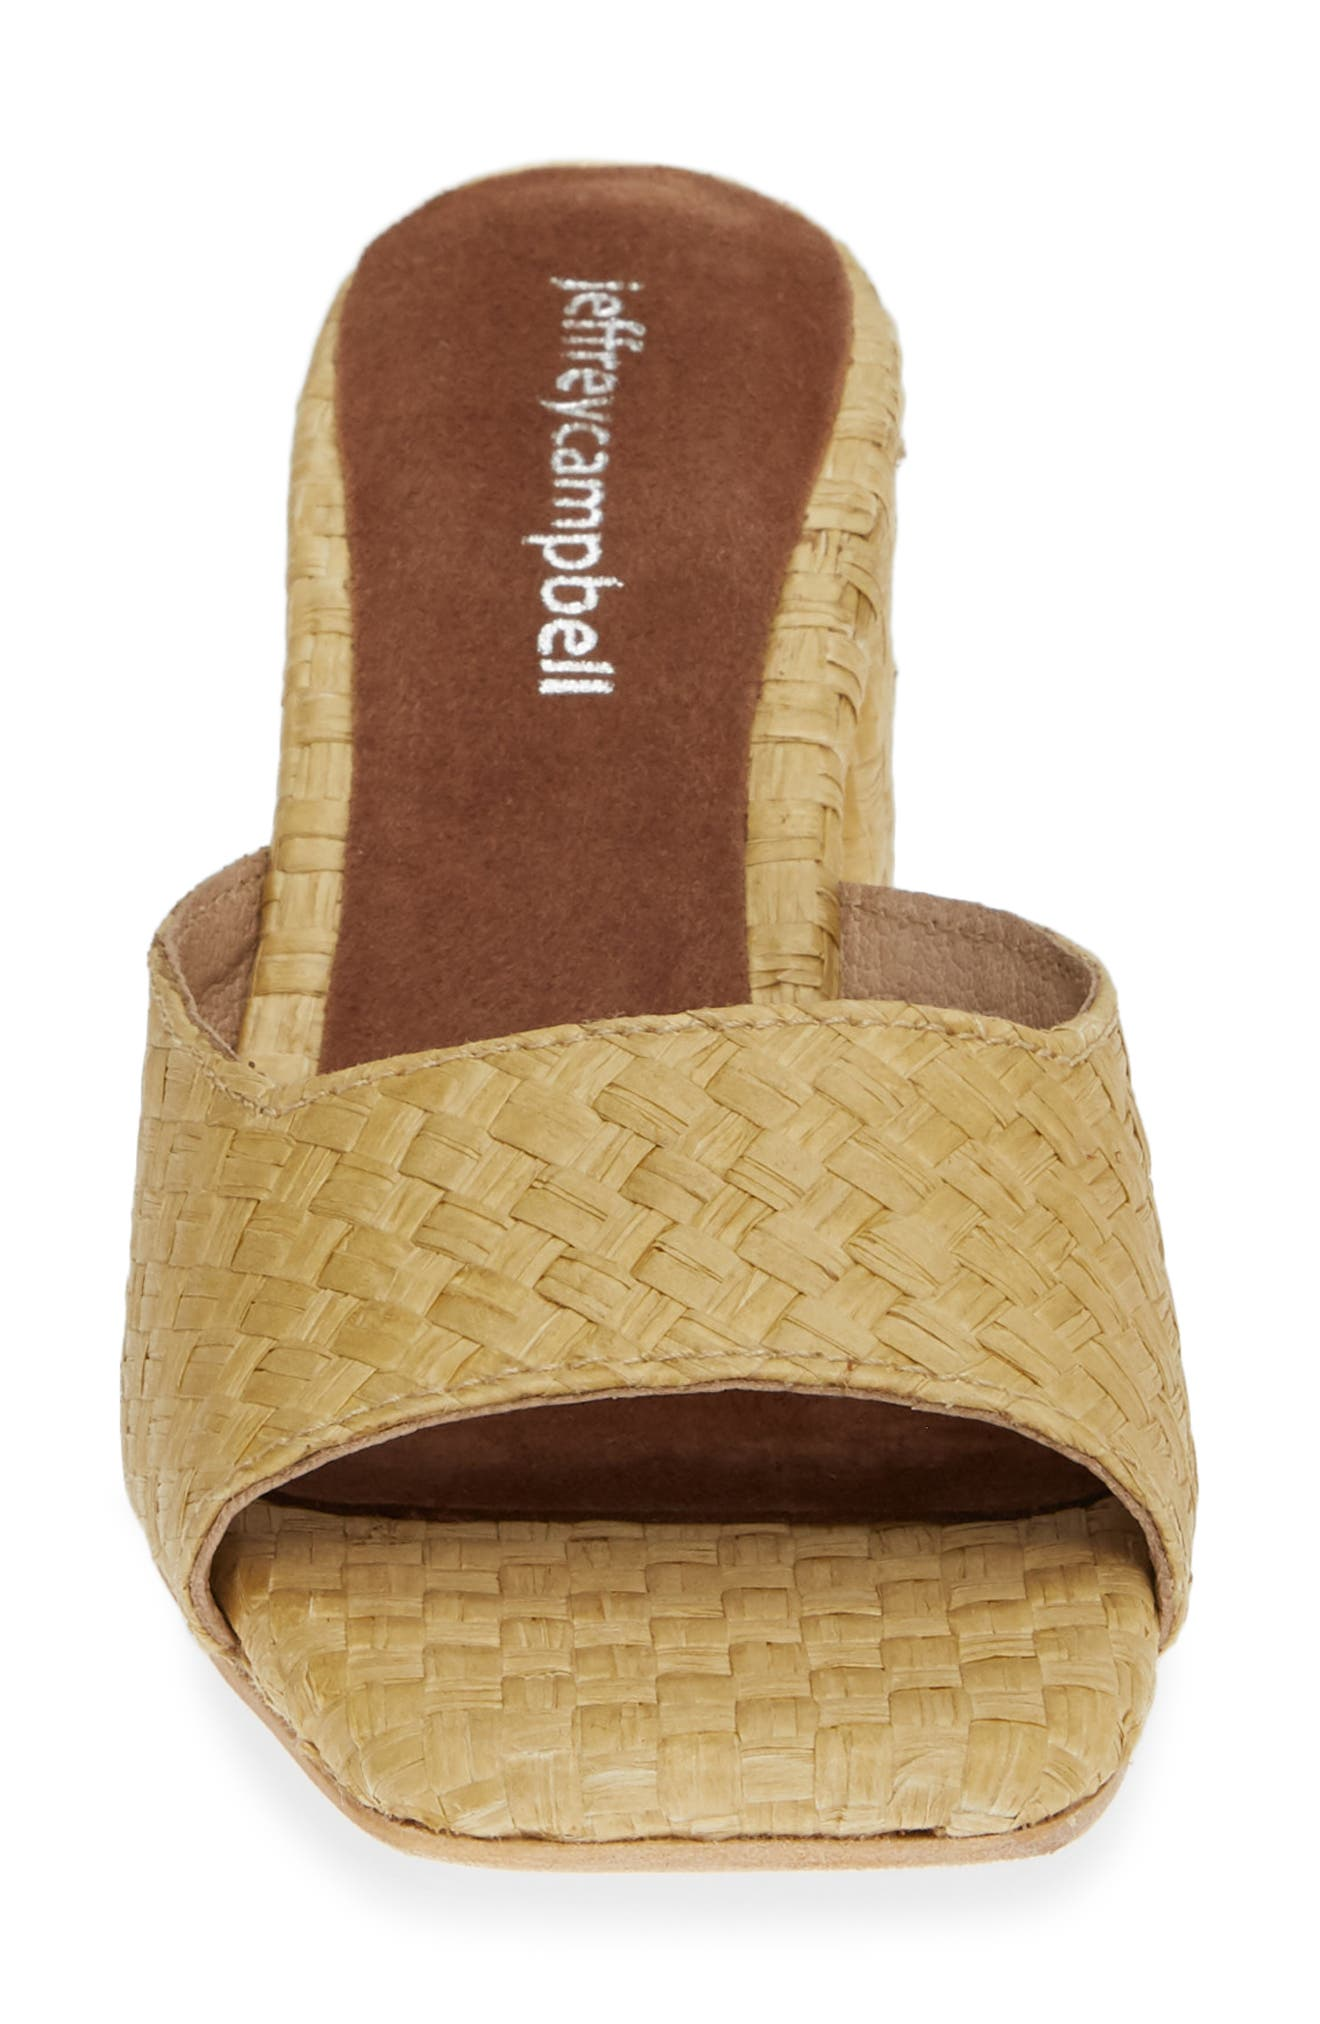 JEFFREY CAMPBELL, Mélange Raffia Slide Sandal, Alternate thumbnail 4, color, 200